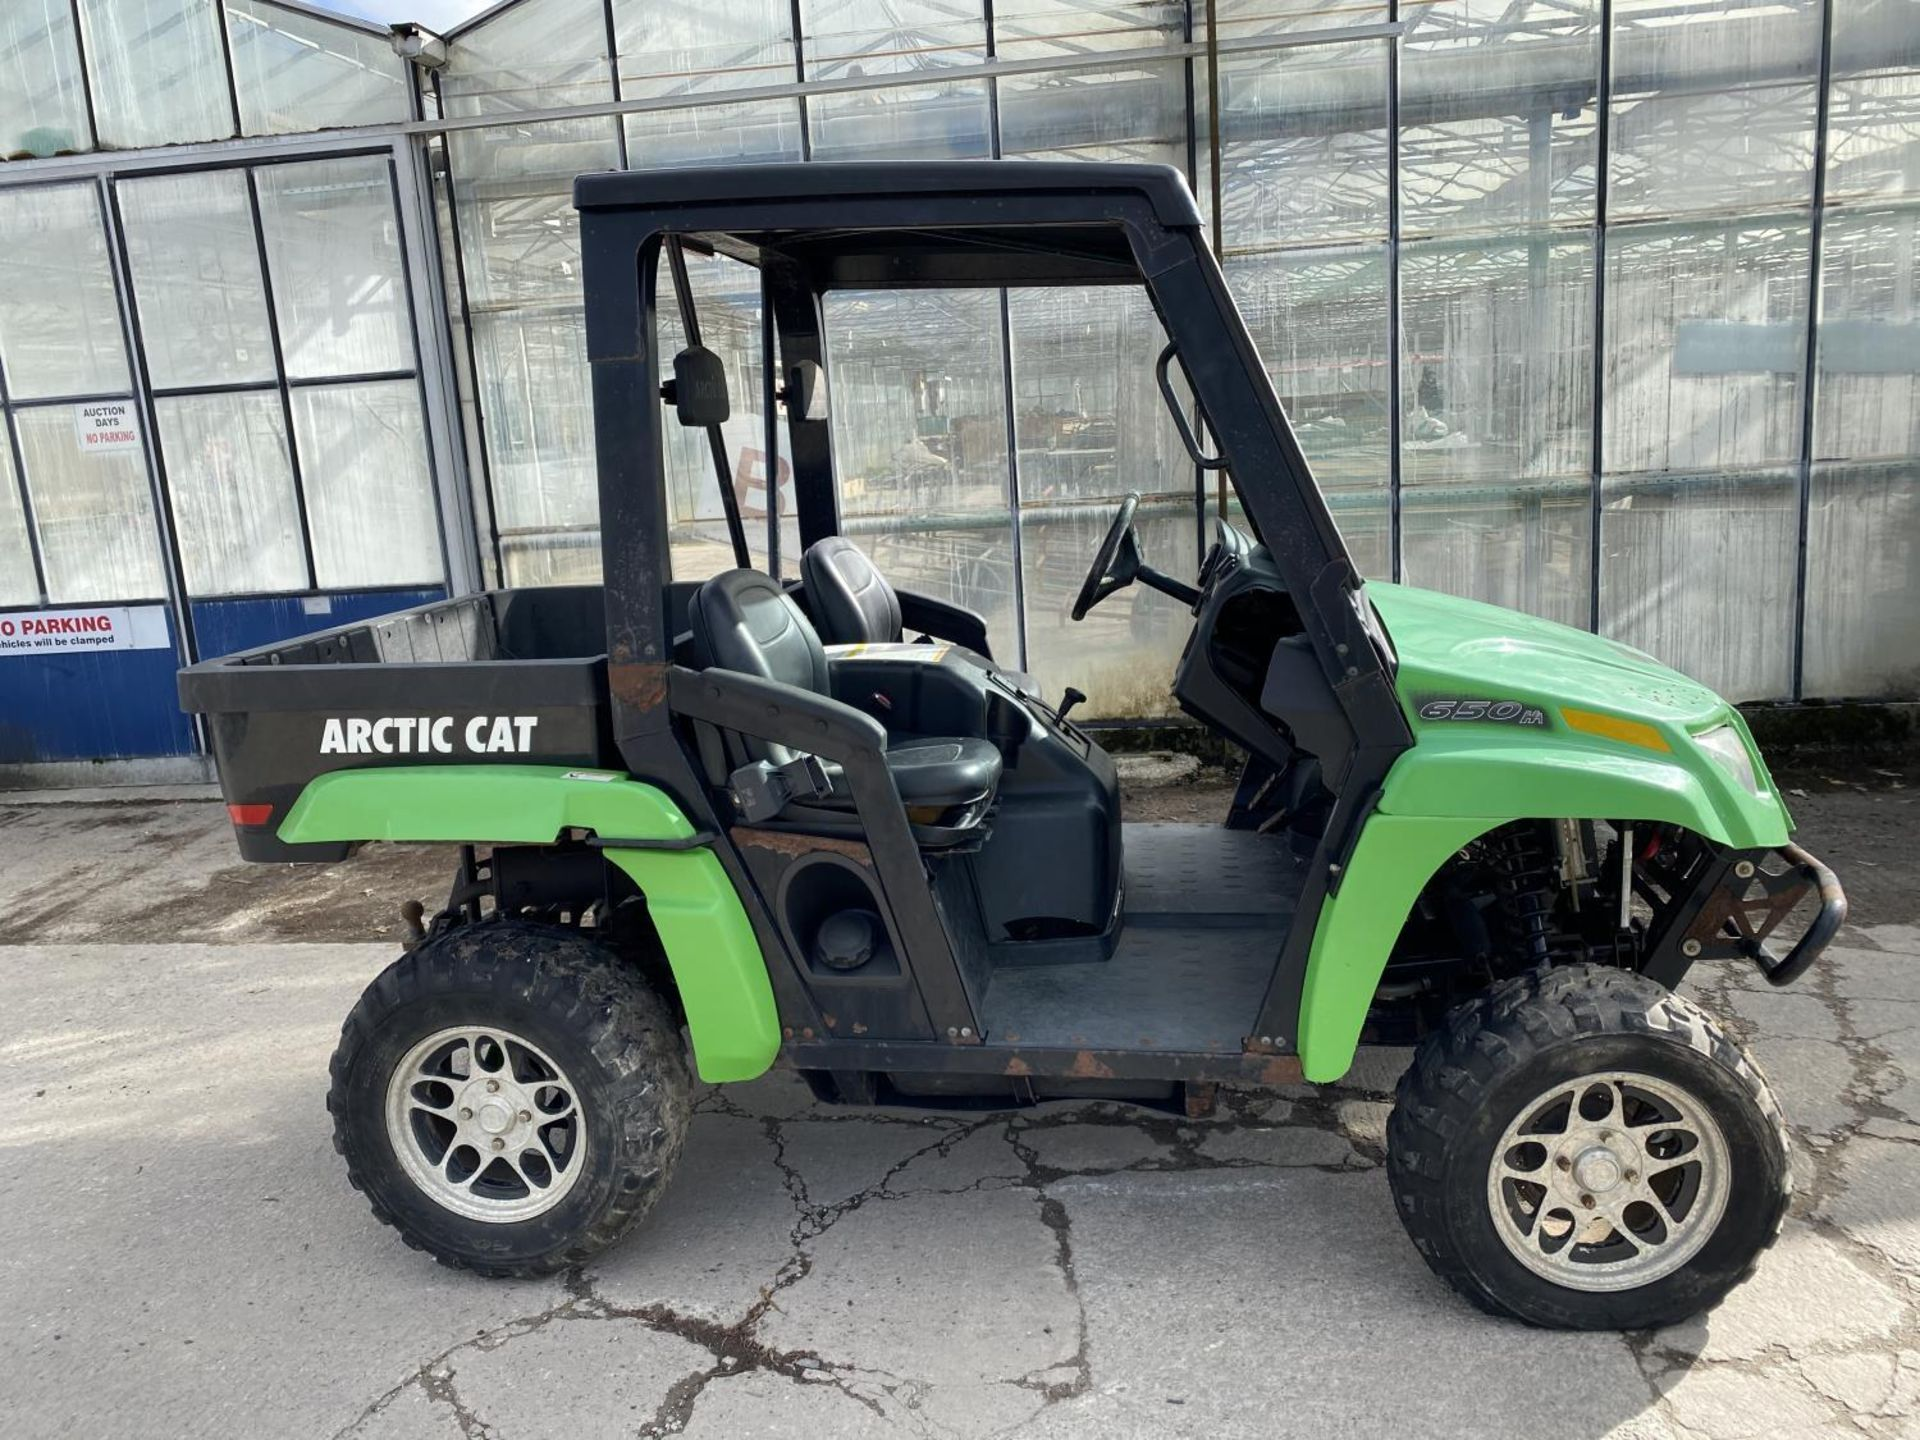 AN ARCTIC CAT QUAD - PETROL ENGINE - NEEDS A BATTERY BELIEVED IN WORKING ORDER NO WARRANTY -FLAT